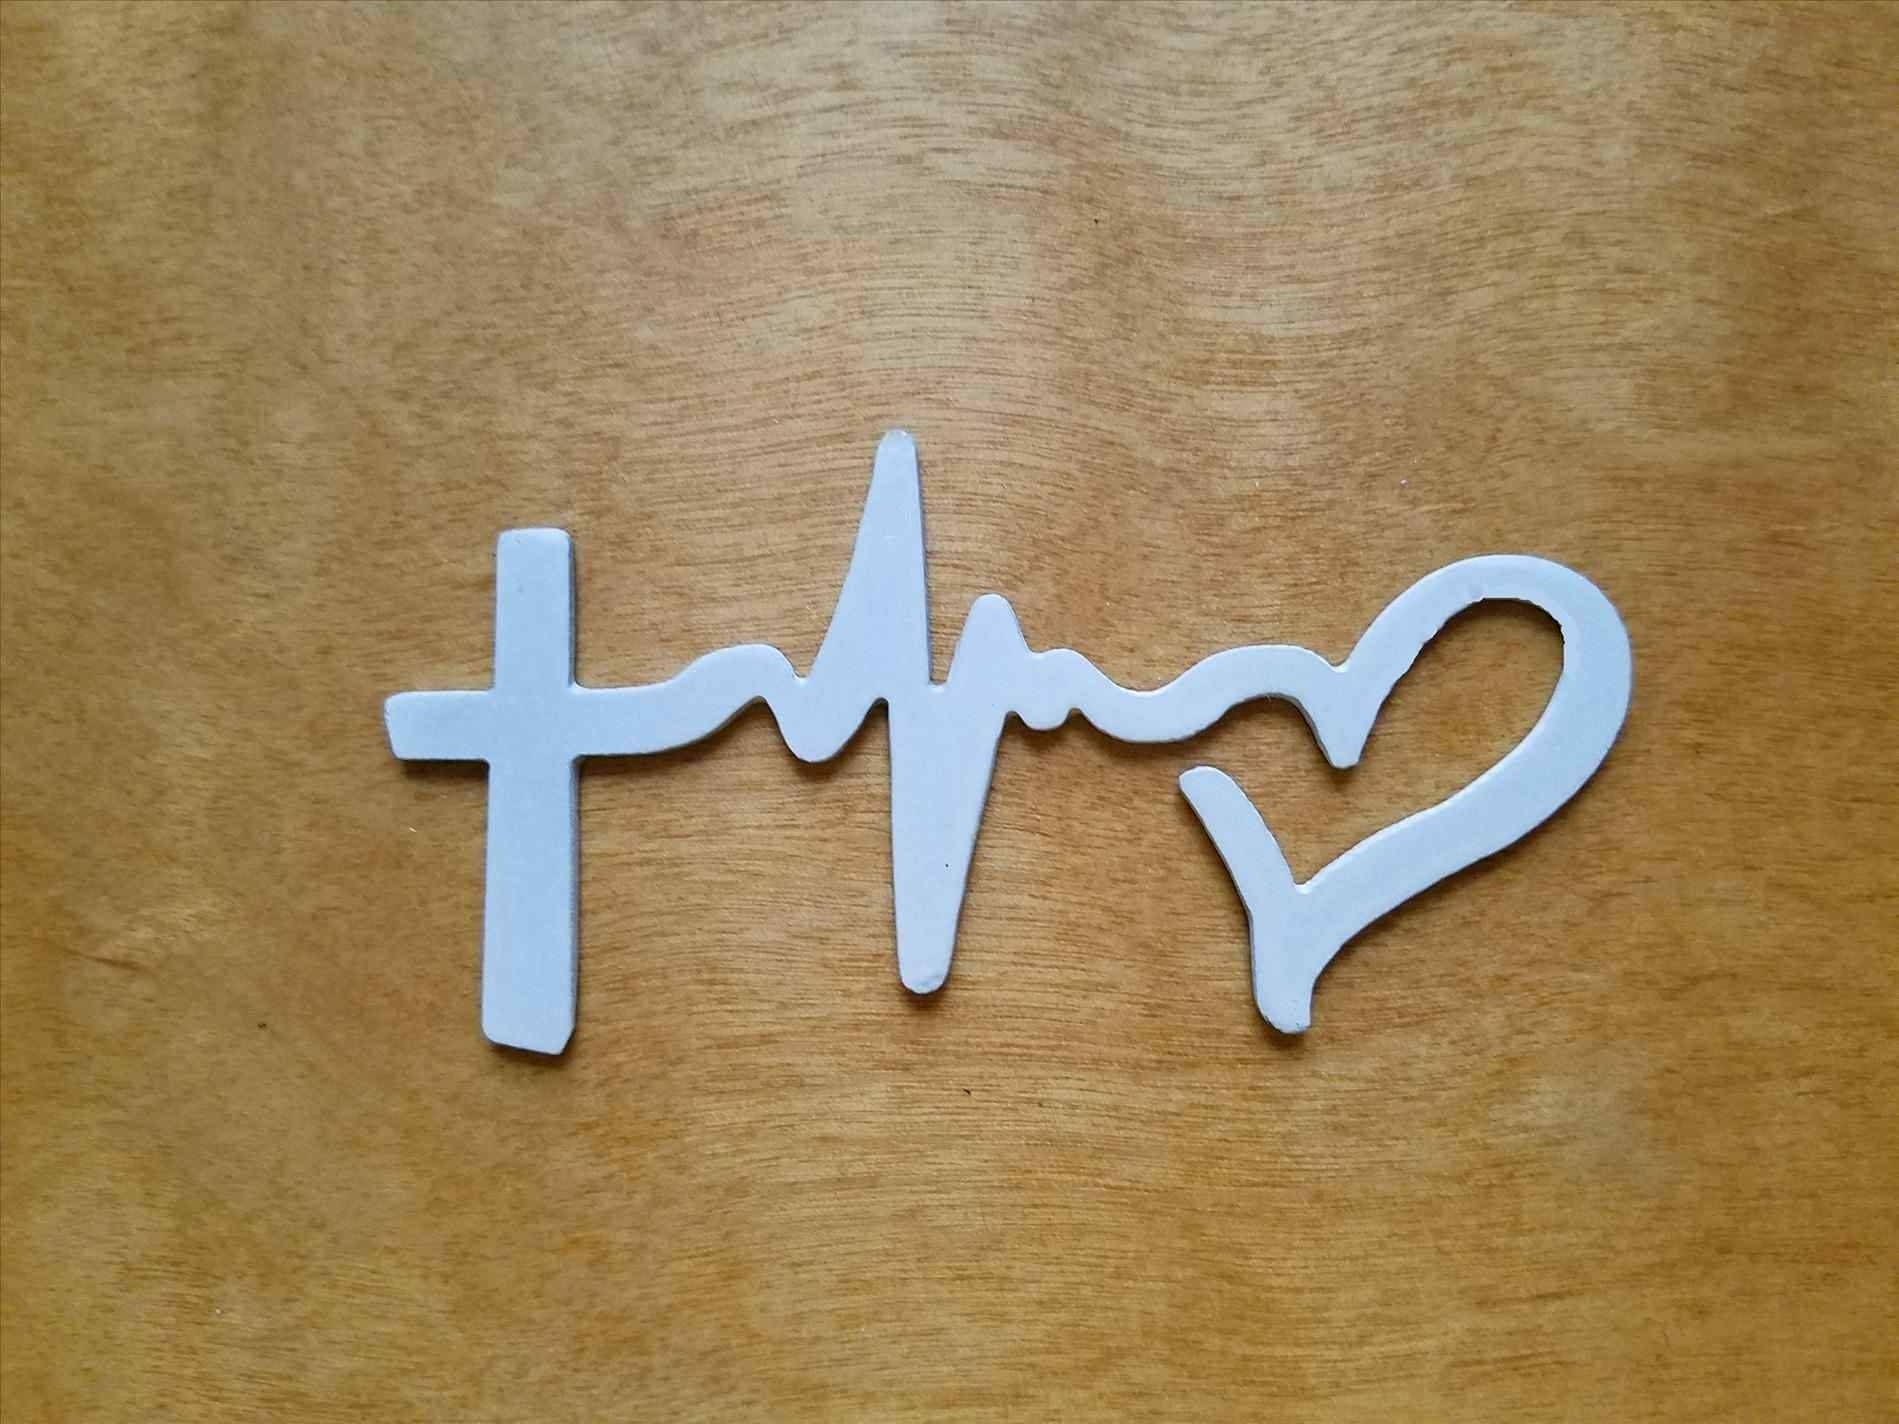 Faith Hope Love Metal Wall Art | Home Interior Decor For Most Current Faith Hope Love Metal Wall Art (View 4 of 20)